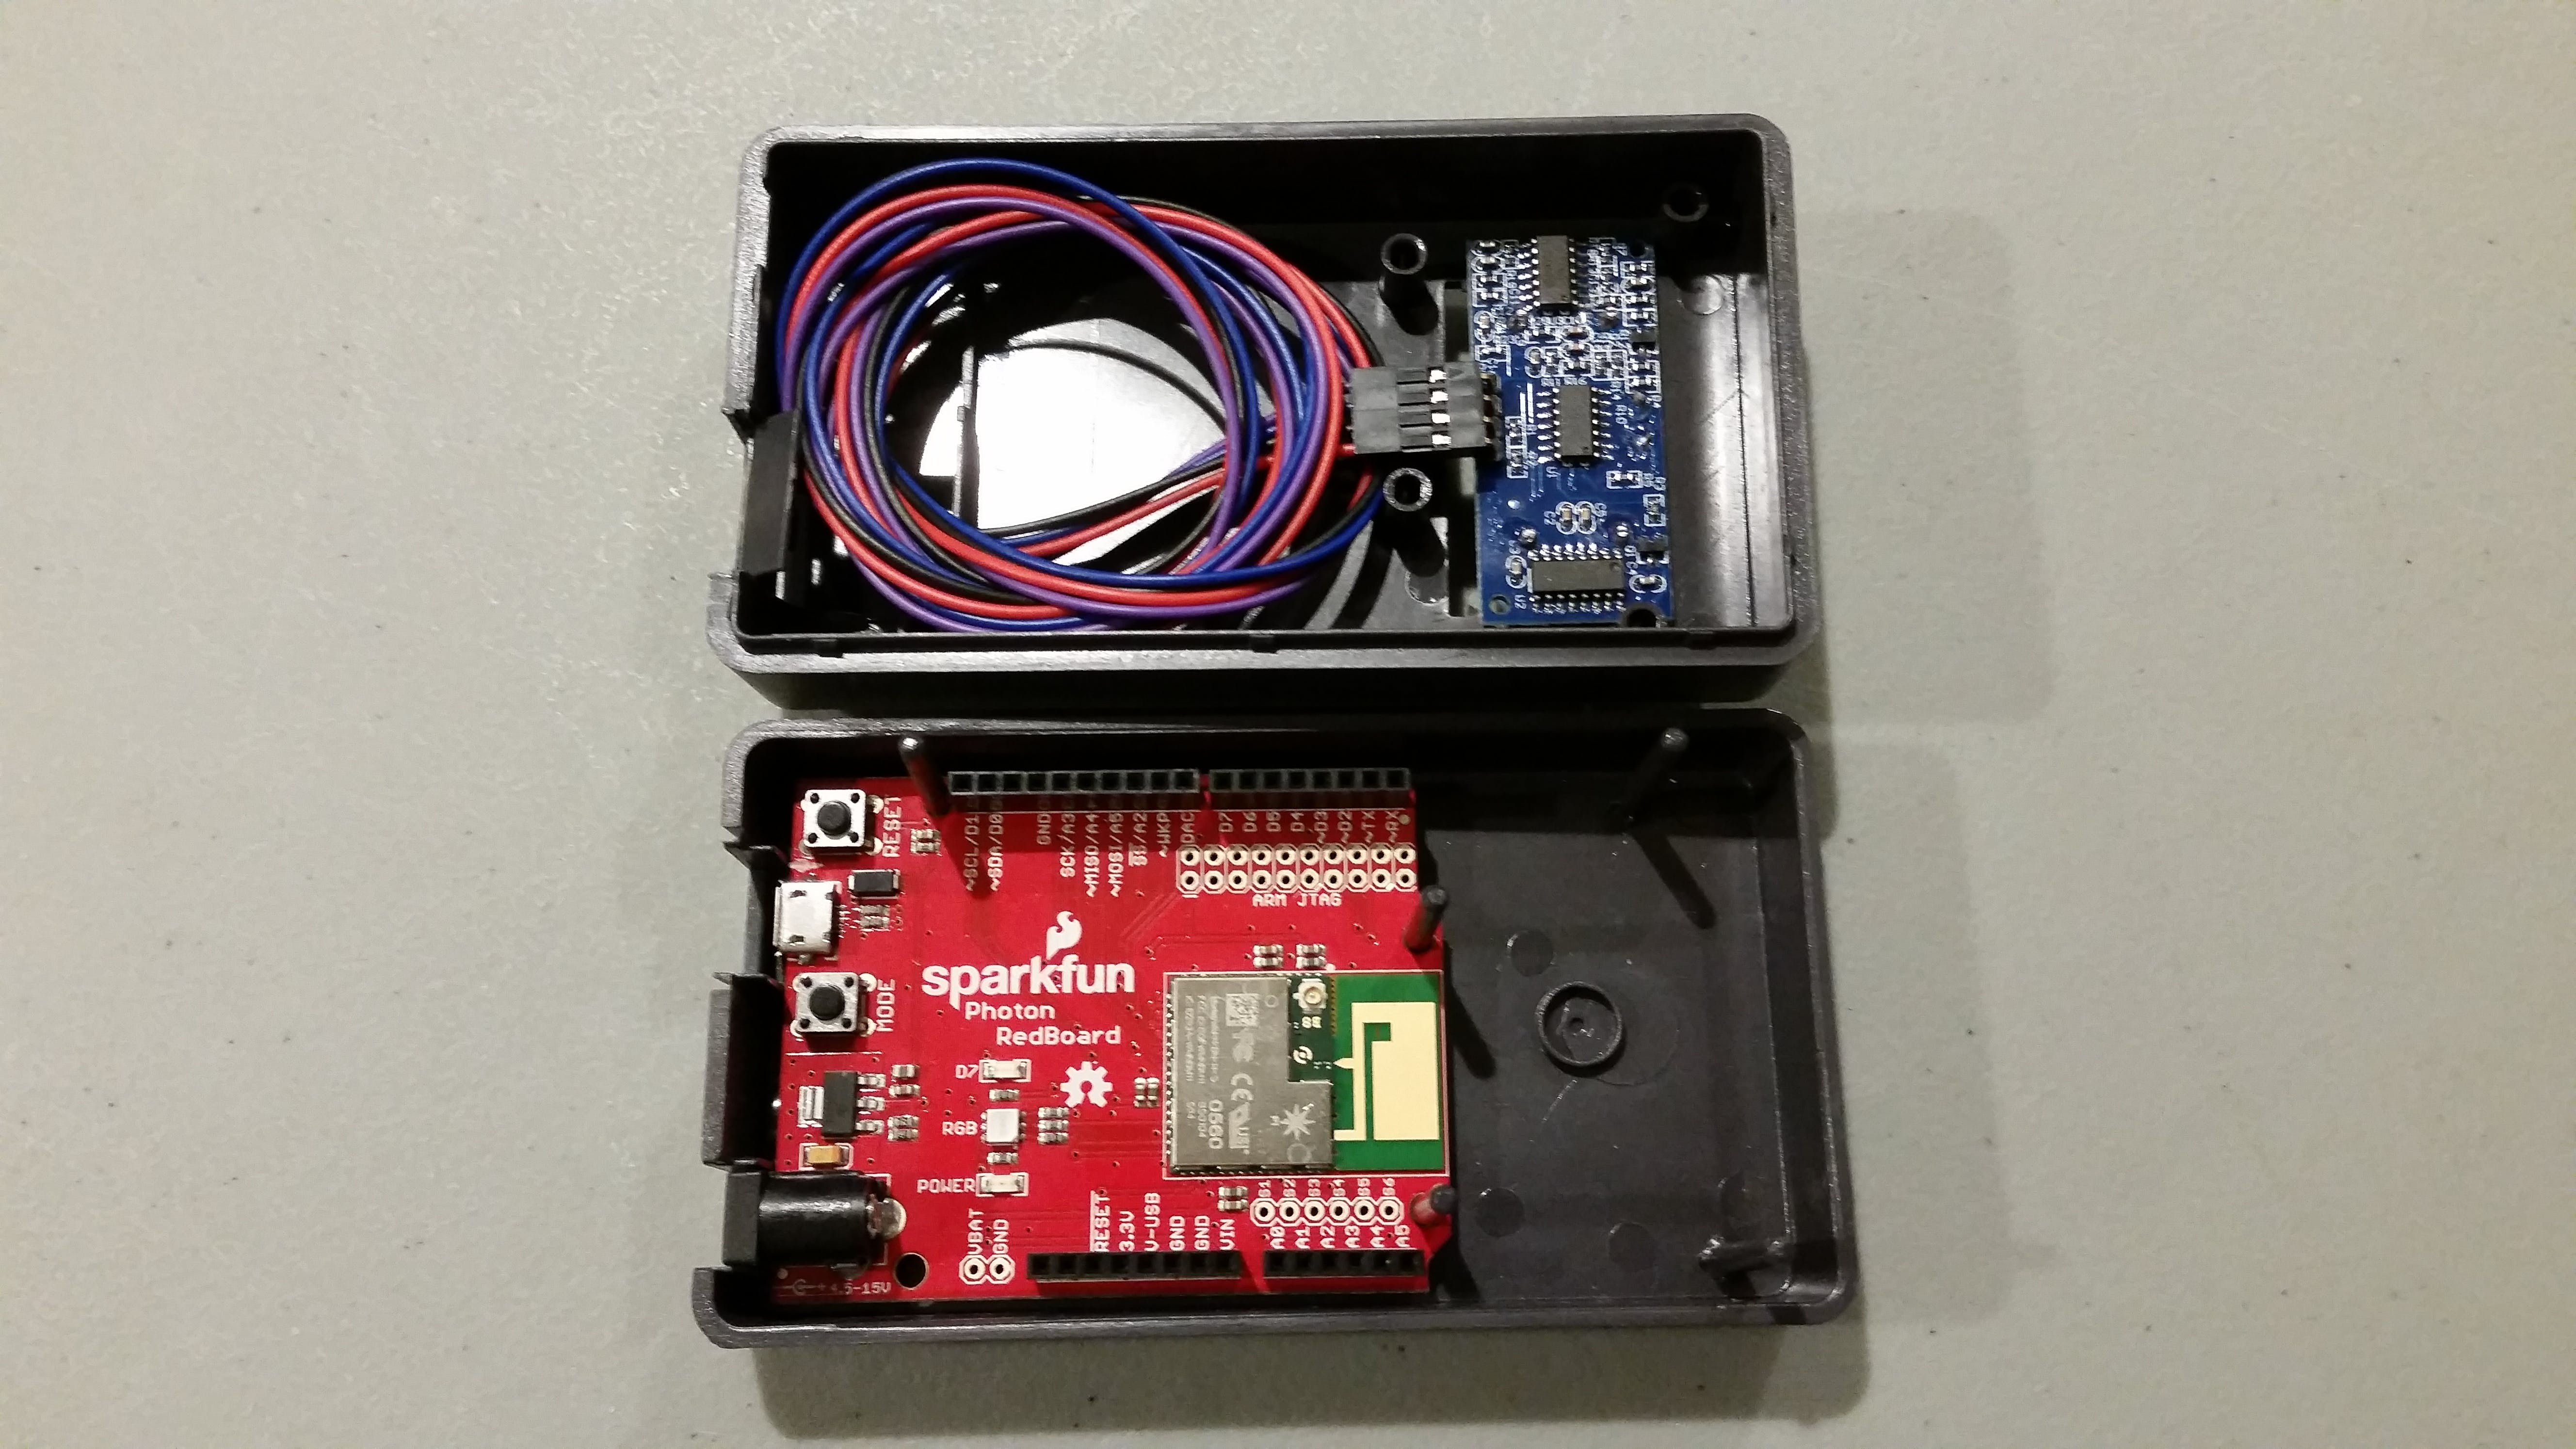 (4 of 5) Fit sensor and secure connectors, fit photon board well